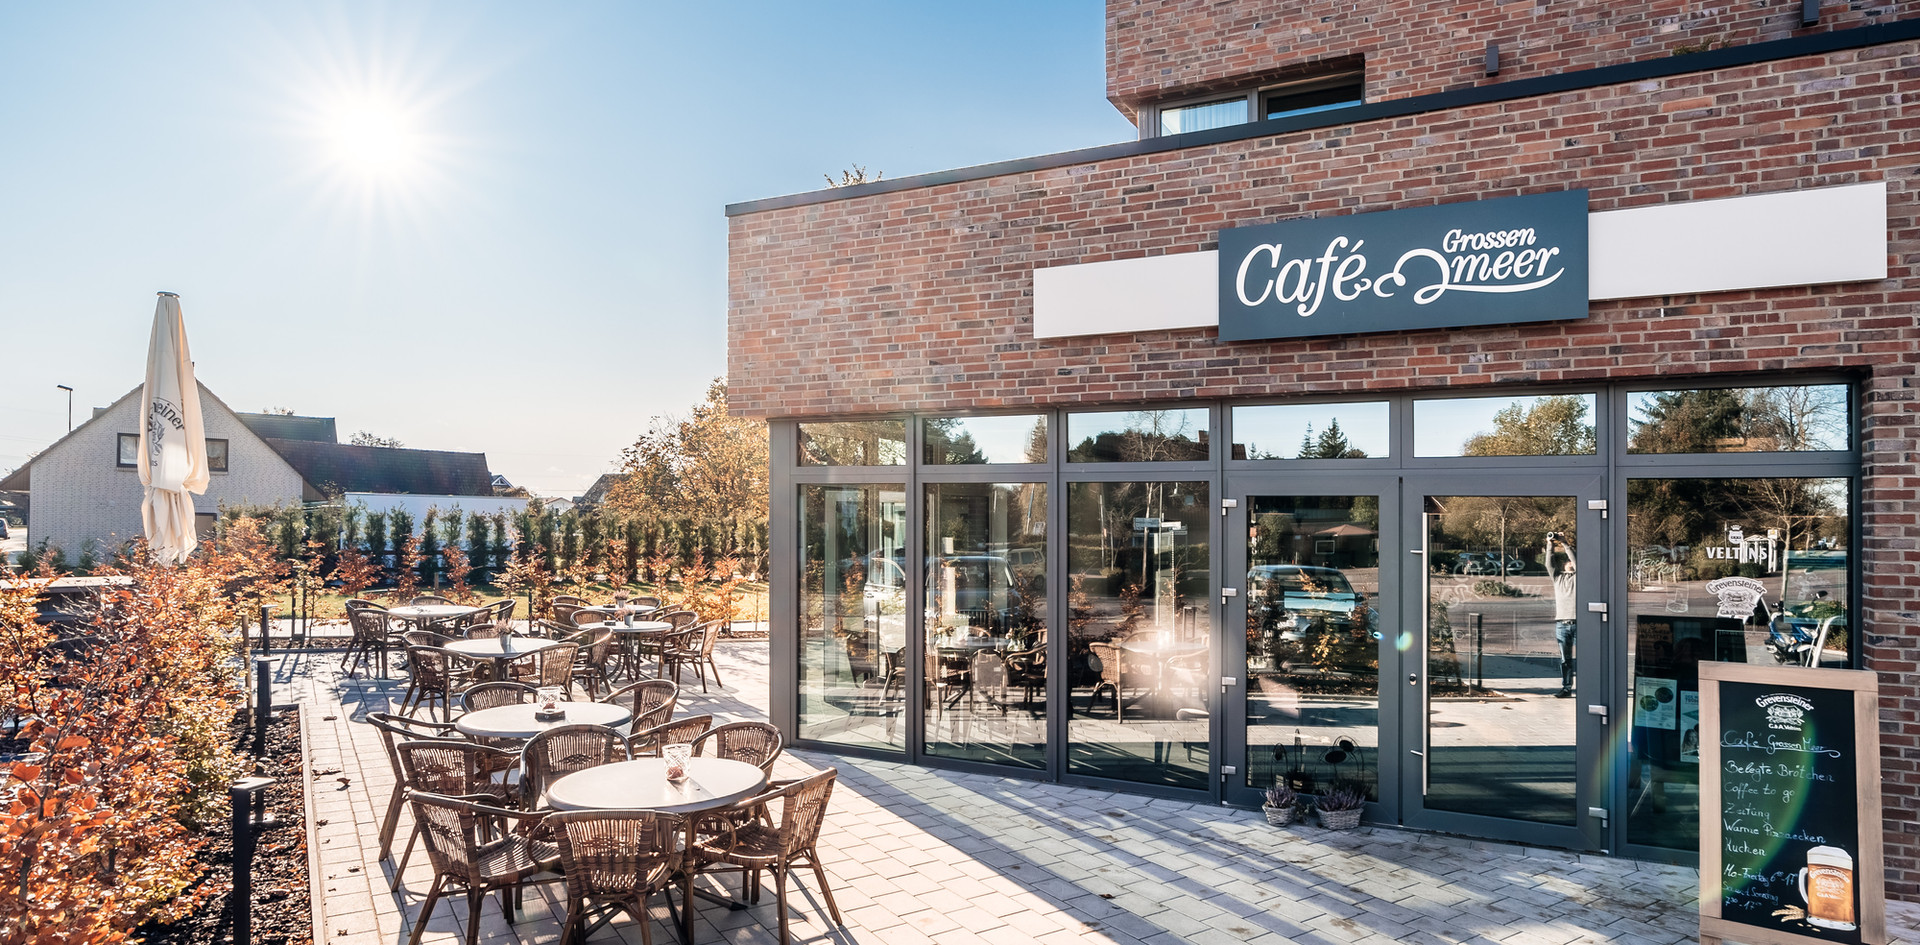 GrossenMeer-Cafe-002.jpg